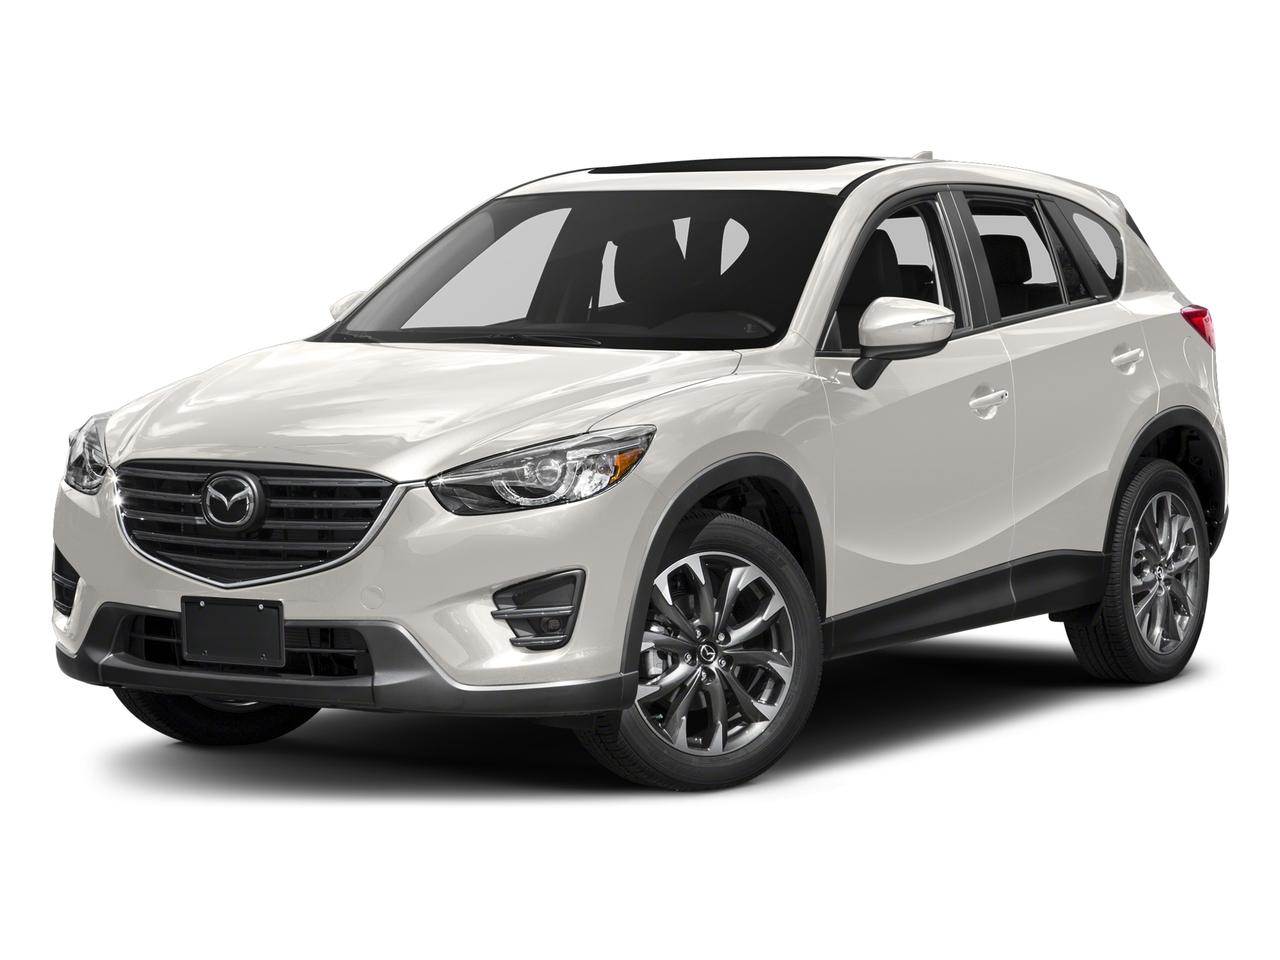 2016 Mazda CX-5 Vehicle Photo in Annapolis, MD 21401